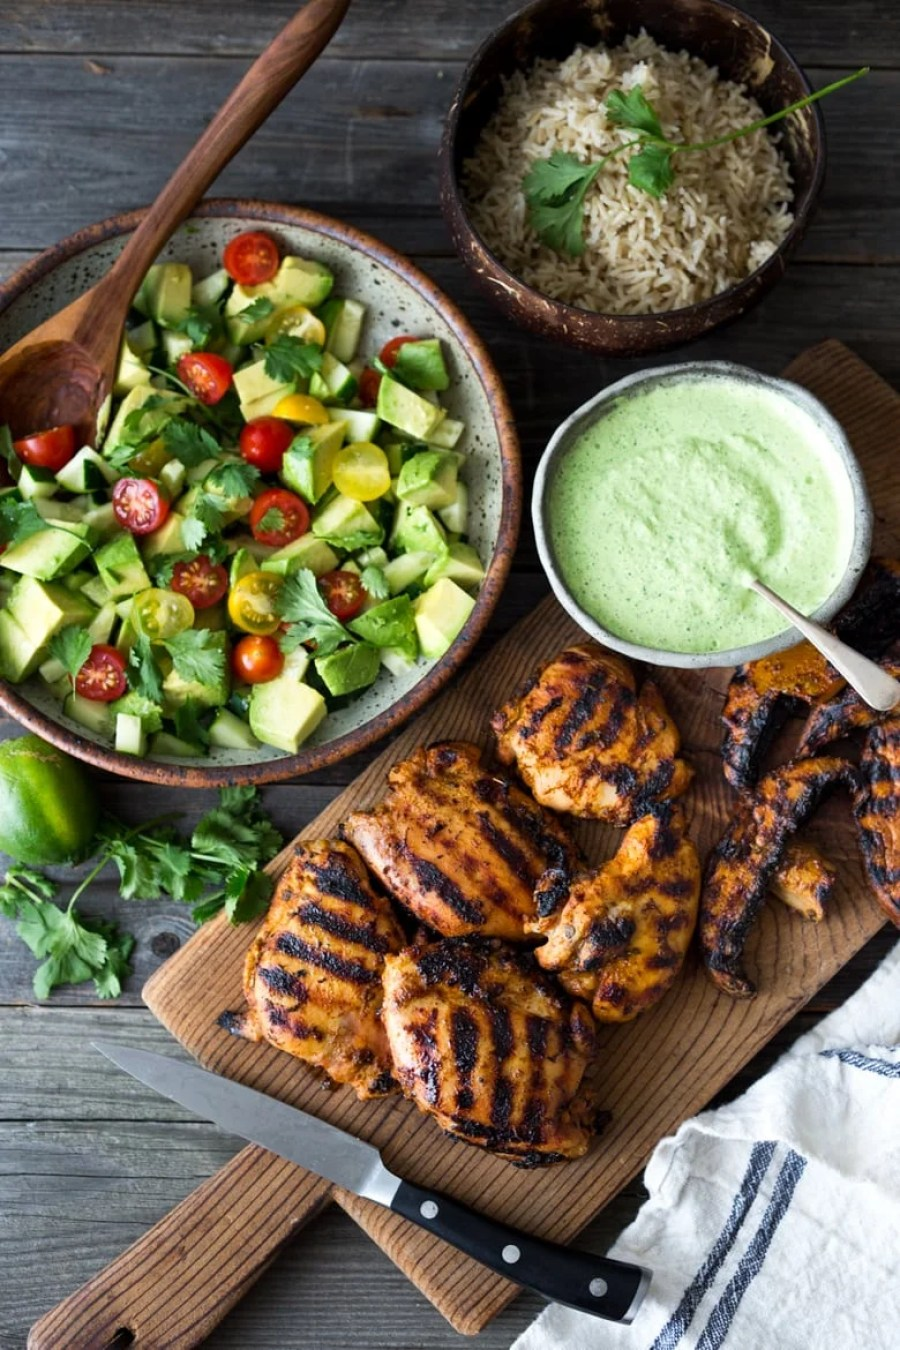 Grilled Peruvian Chicken with Green Sauce